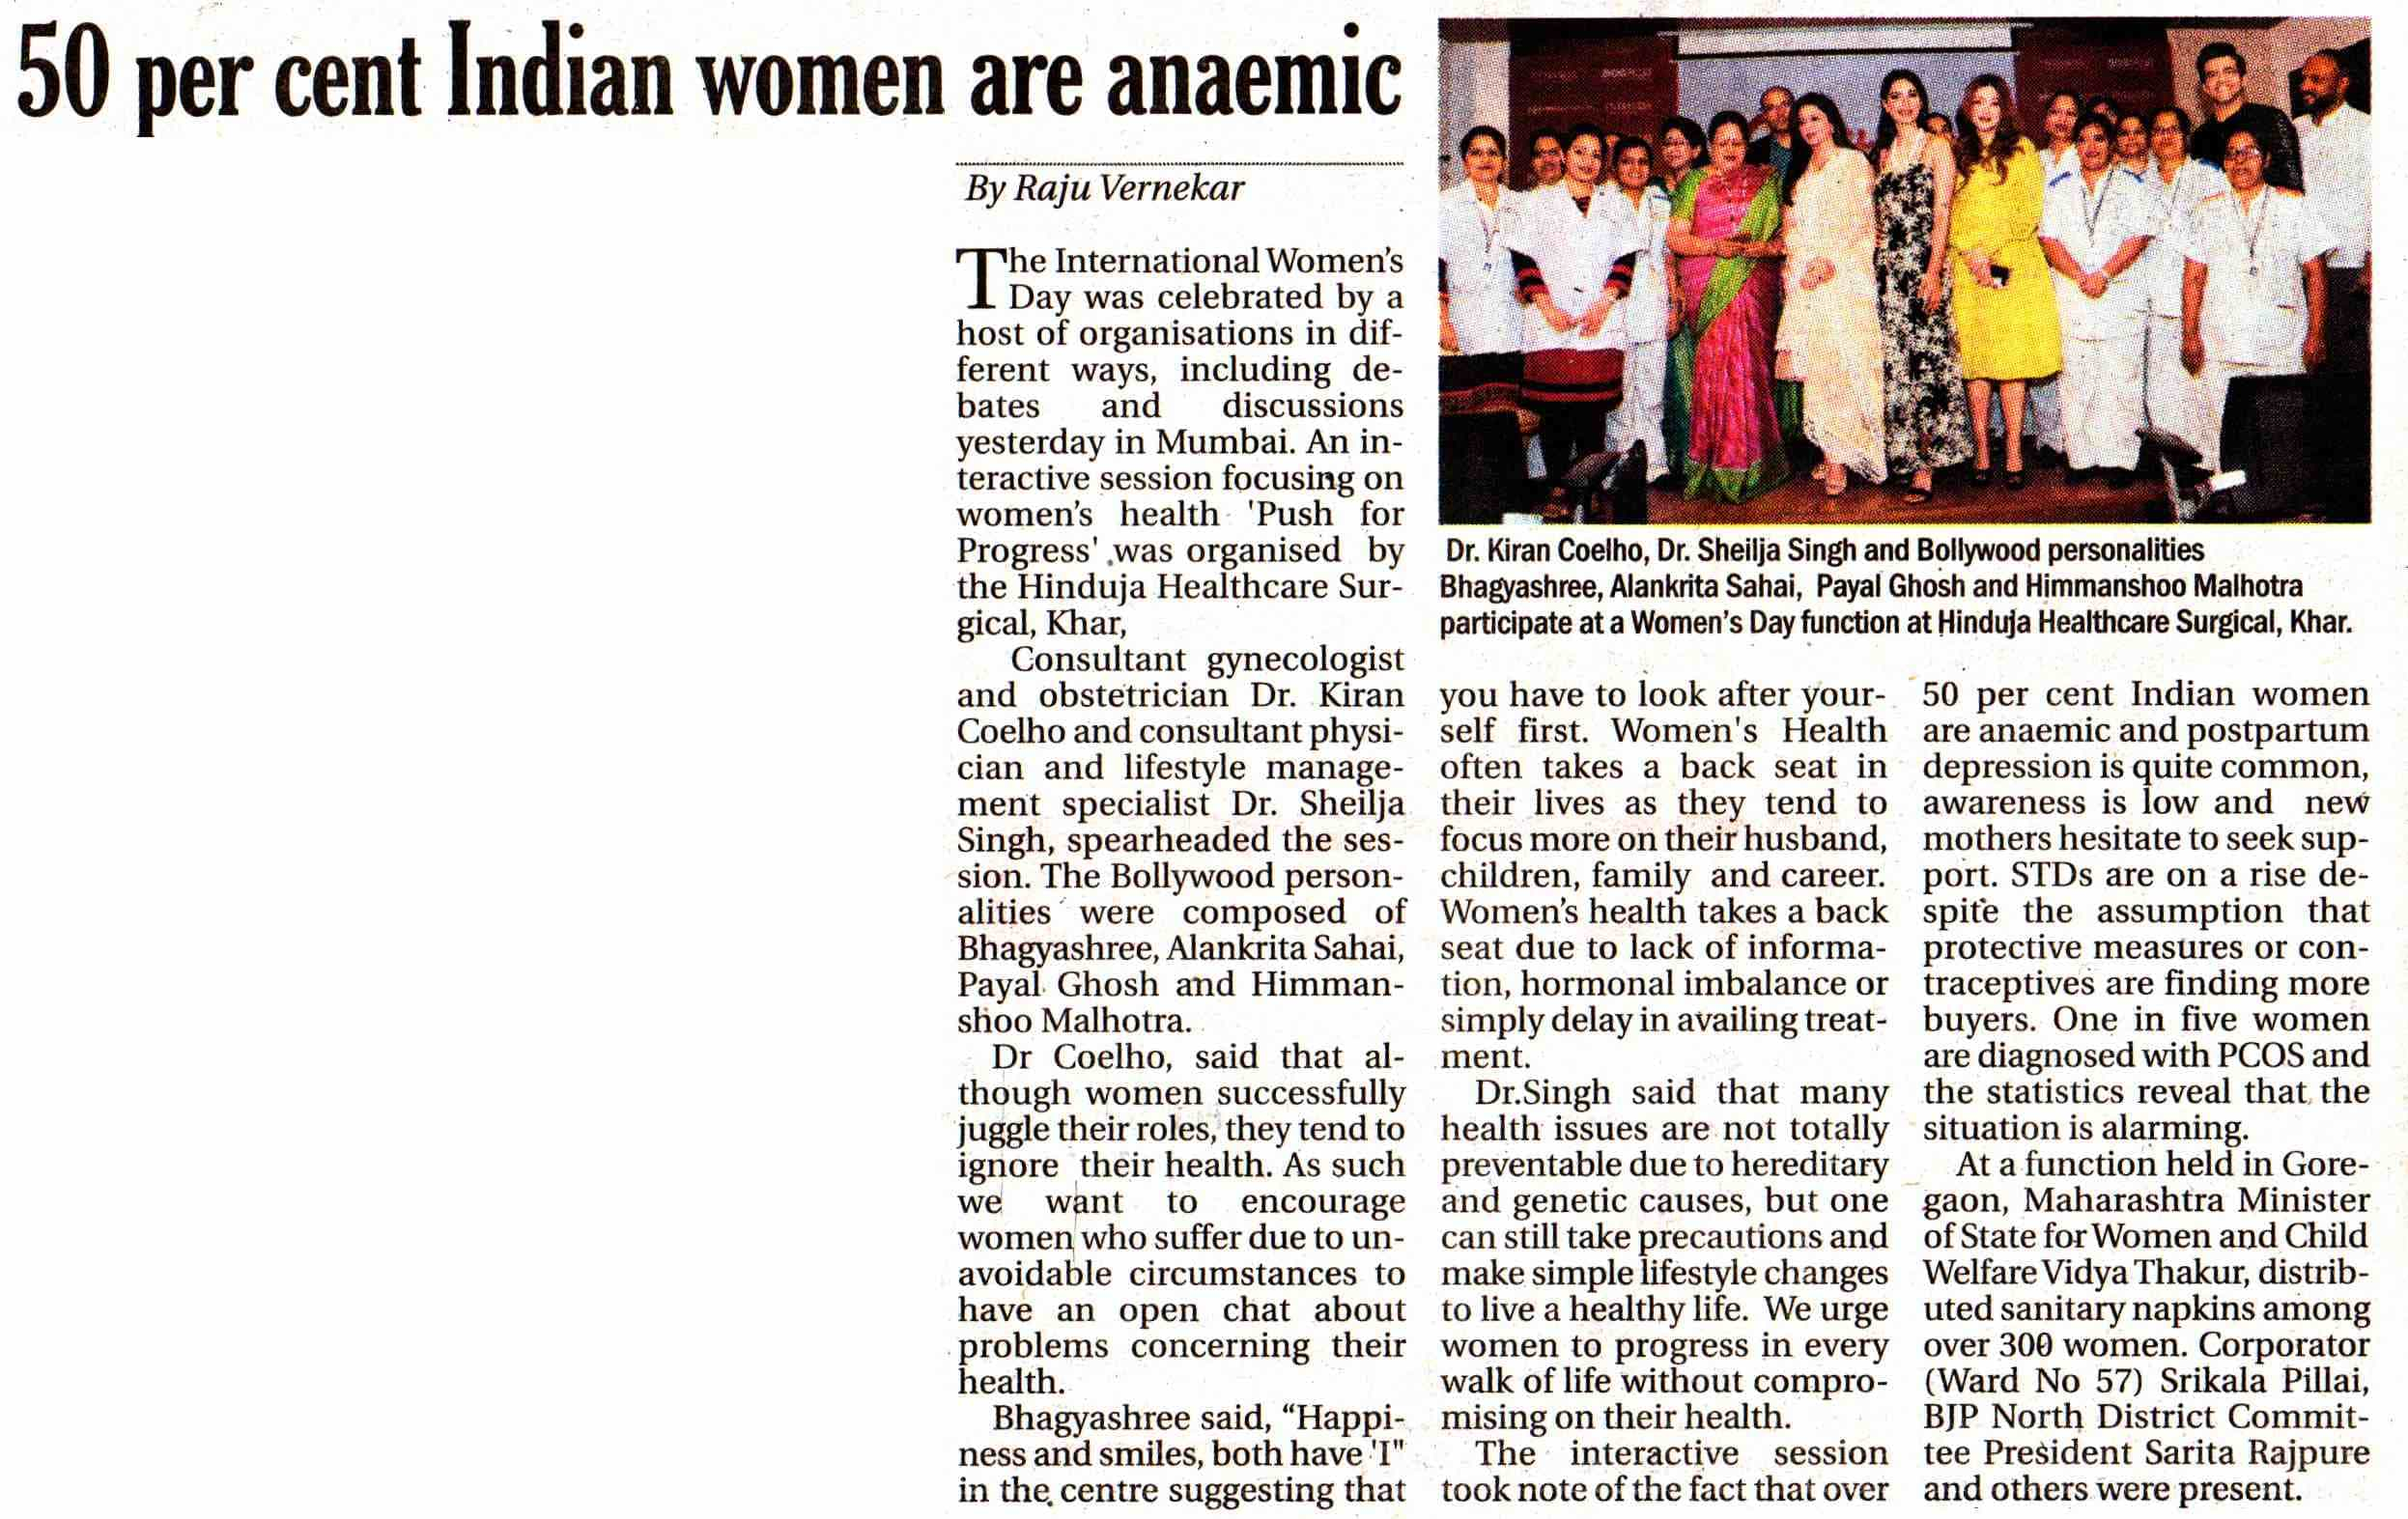 50 per cent of Indian women are anaemic   - Hinduja Healthcare